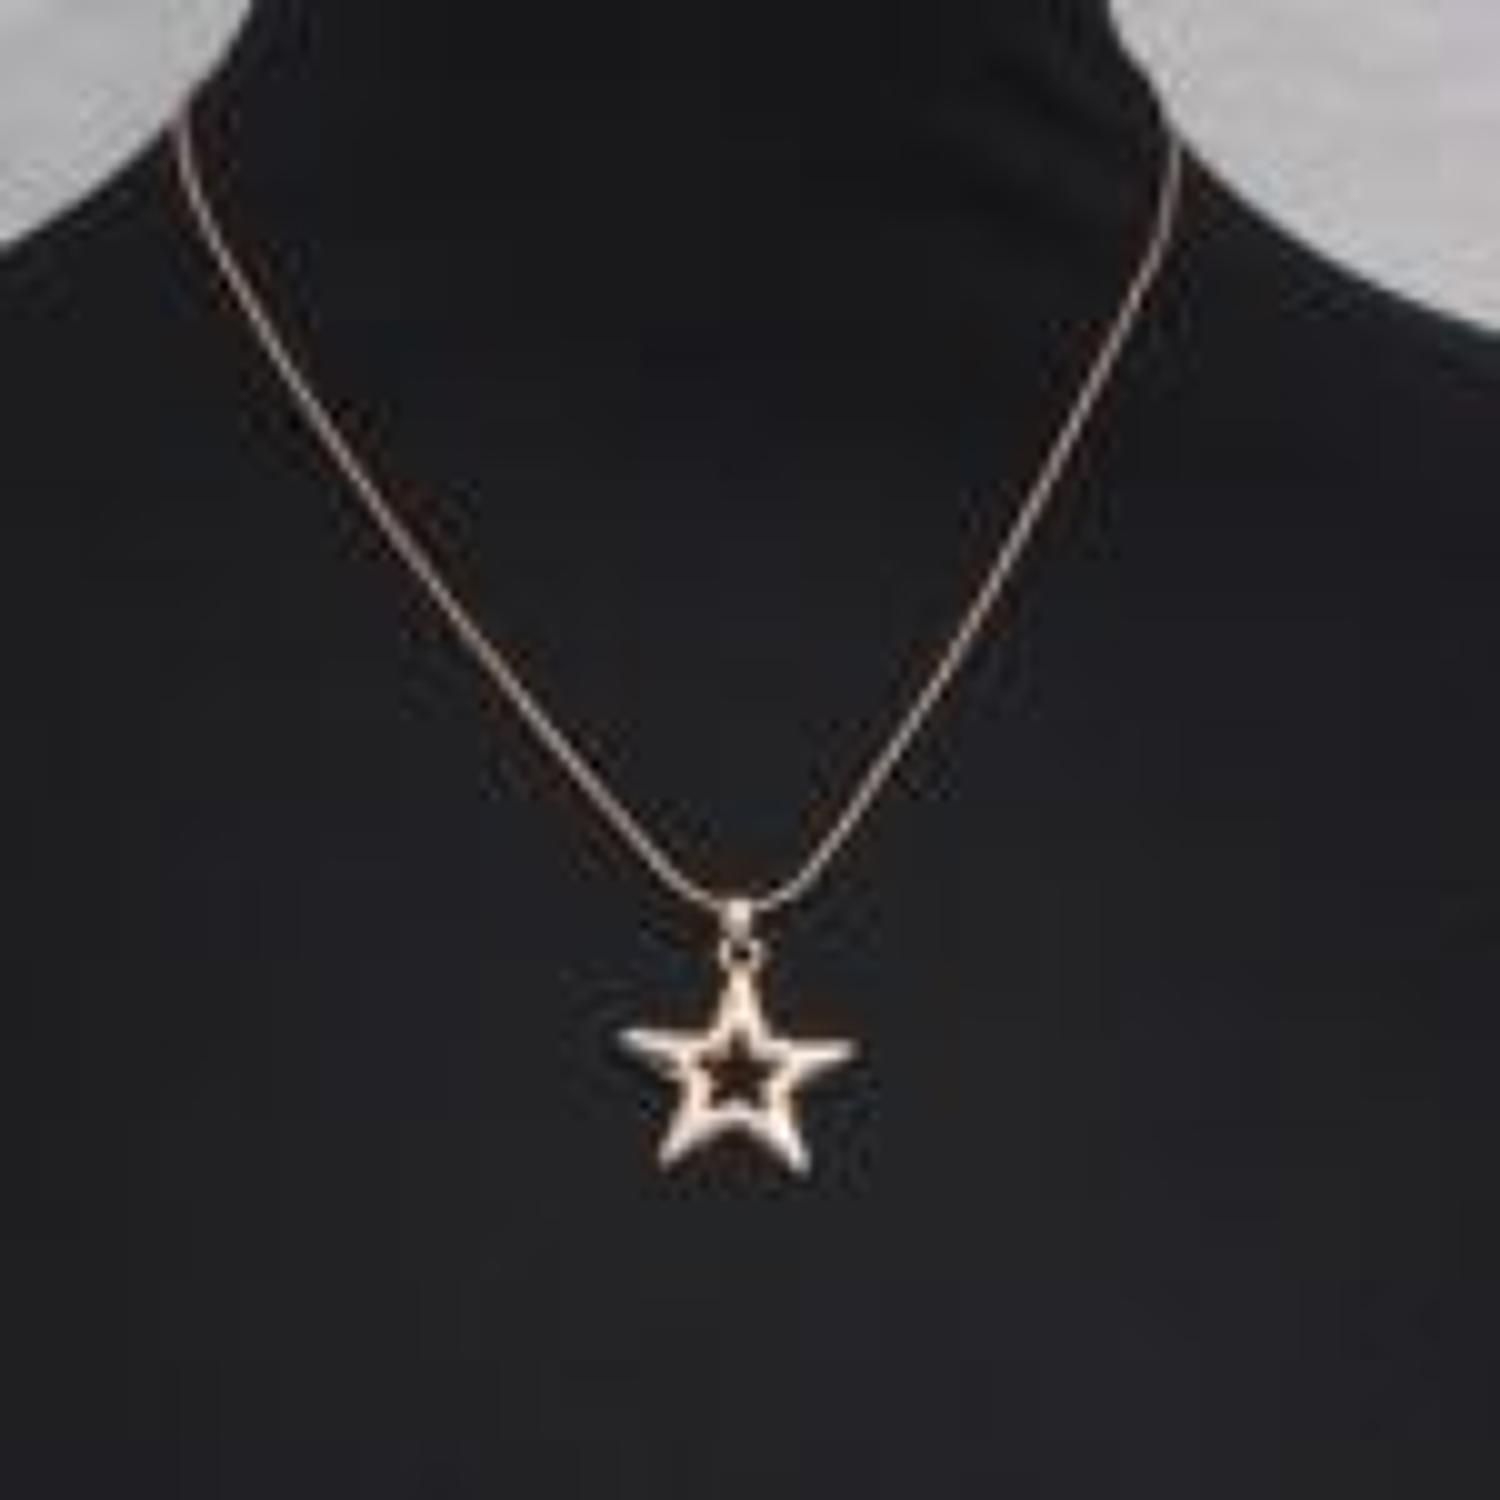 J & L - Short necklace with silver star pendant